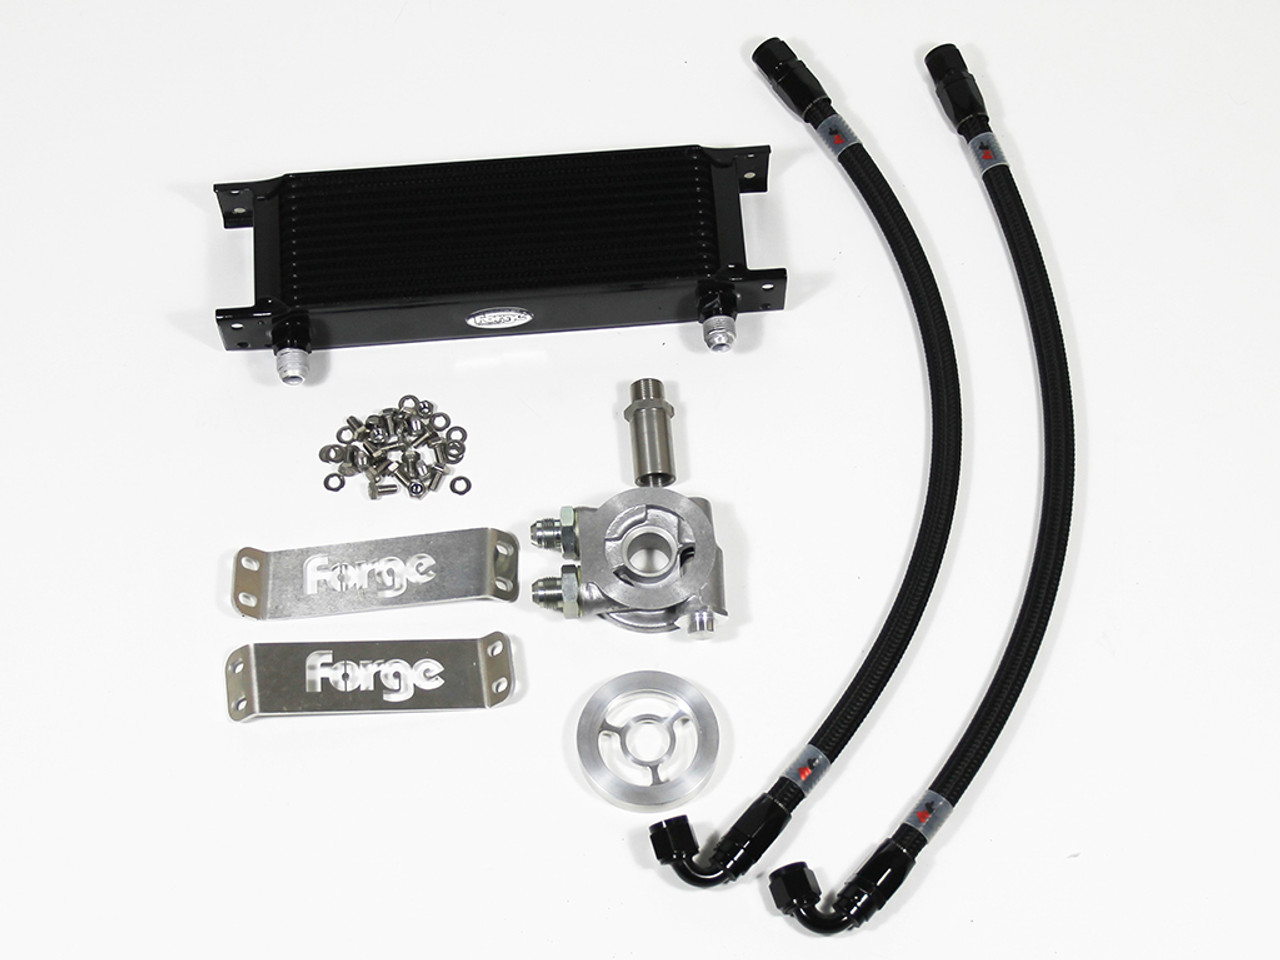 Forge Engine oil cooler kit for Transporter 2 0TDI Twin Turbo